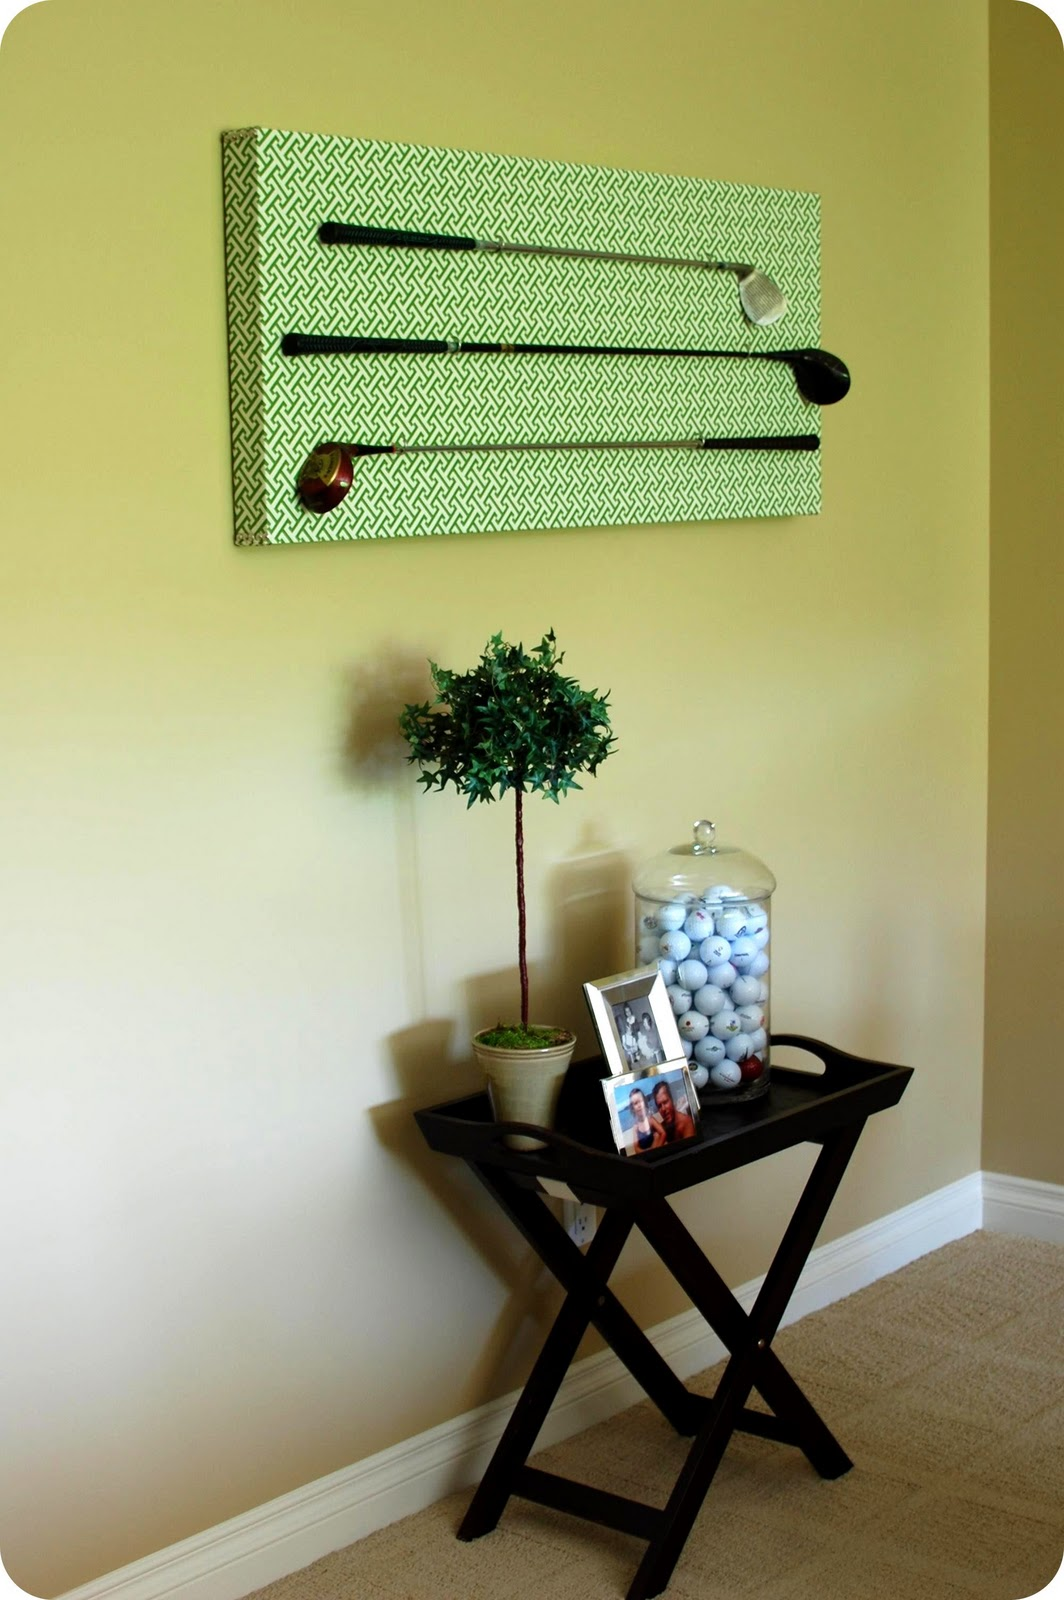 Remodelaholic | DIY Golf Club Art Display Project; 33 Shades of Green